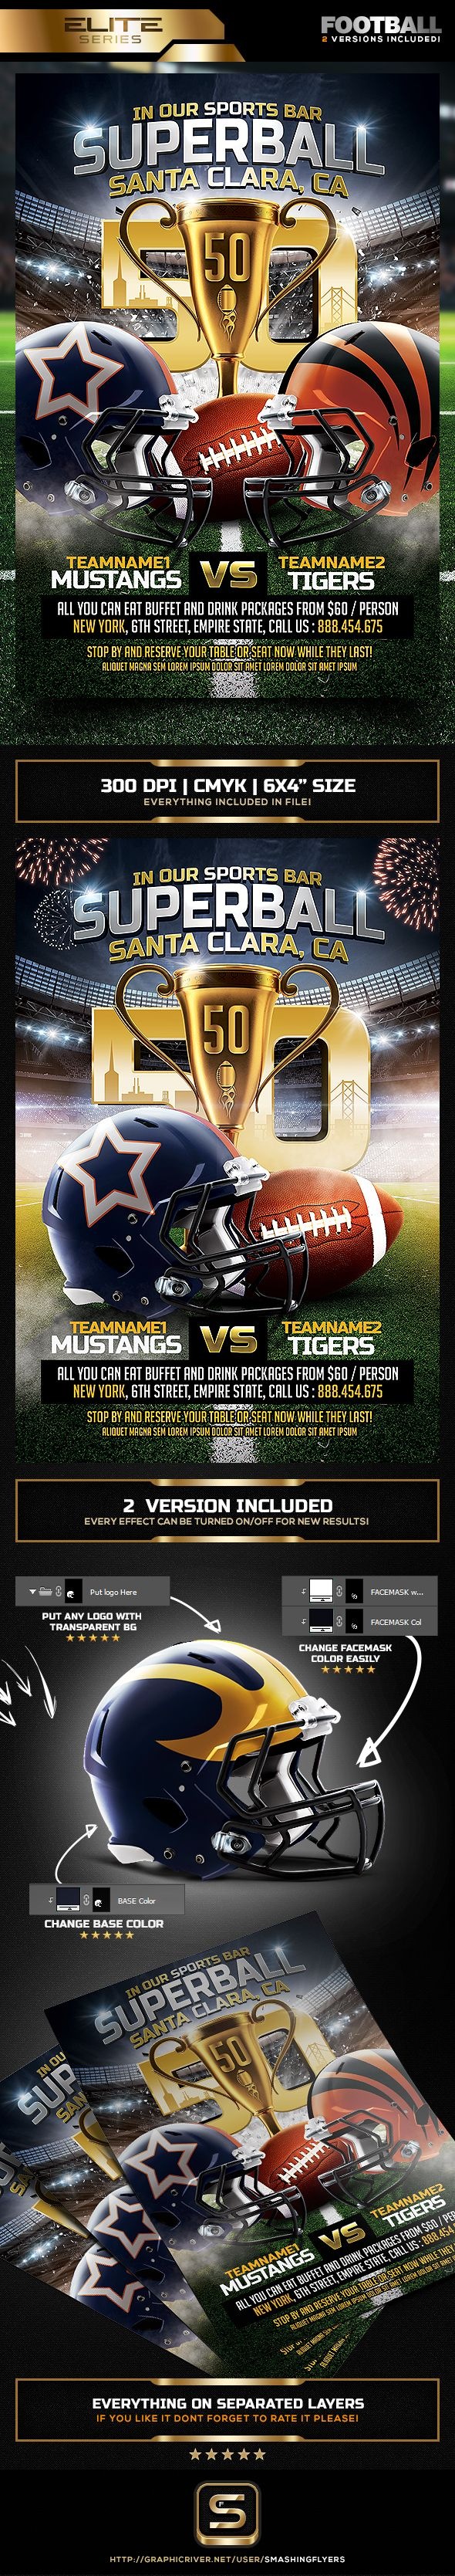 American Football flyer #American #Football Game #Flyer #American Football flyer - Sports Flyers Download